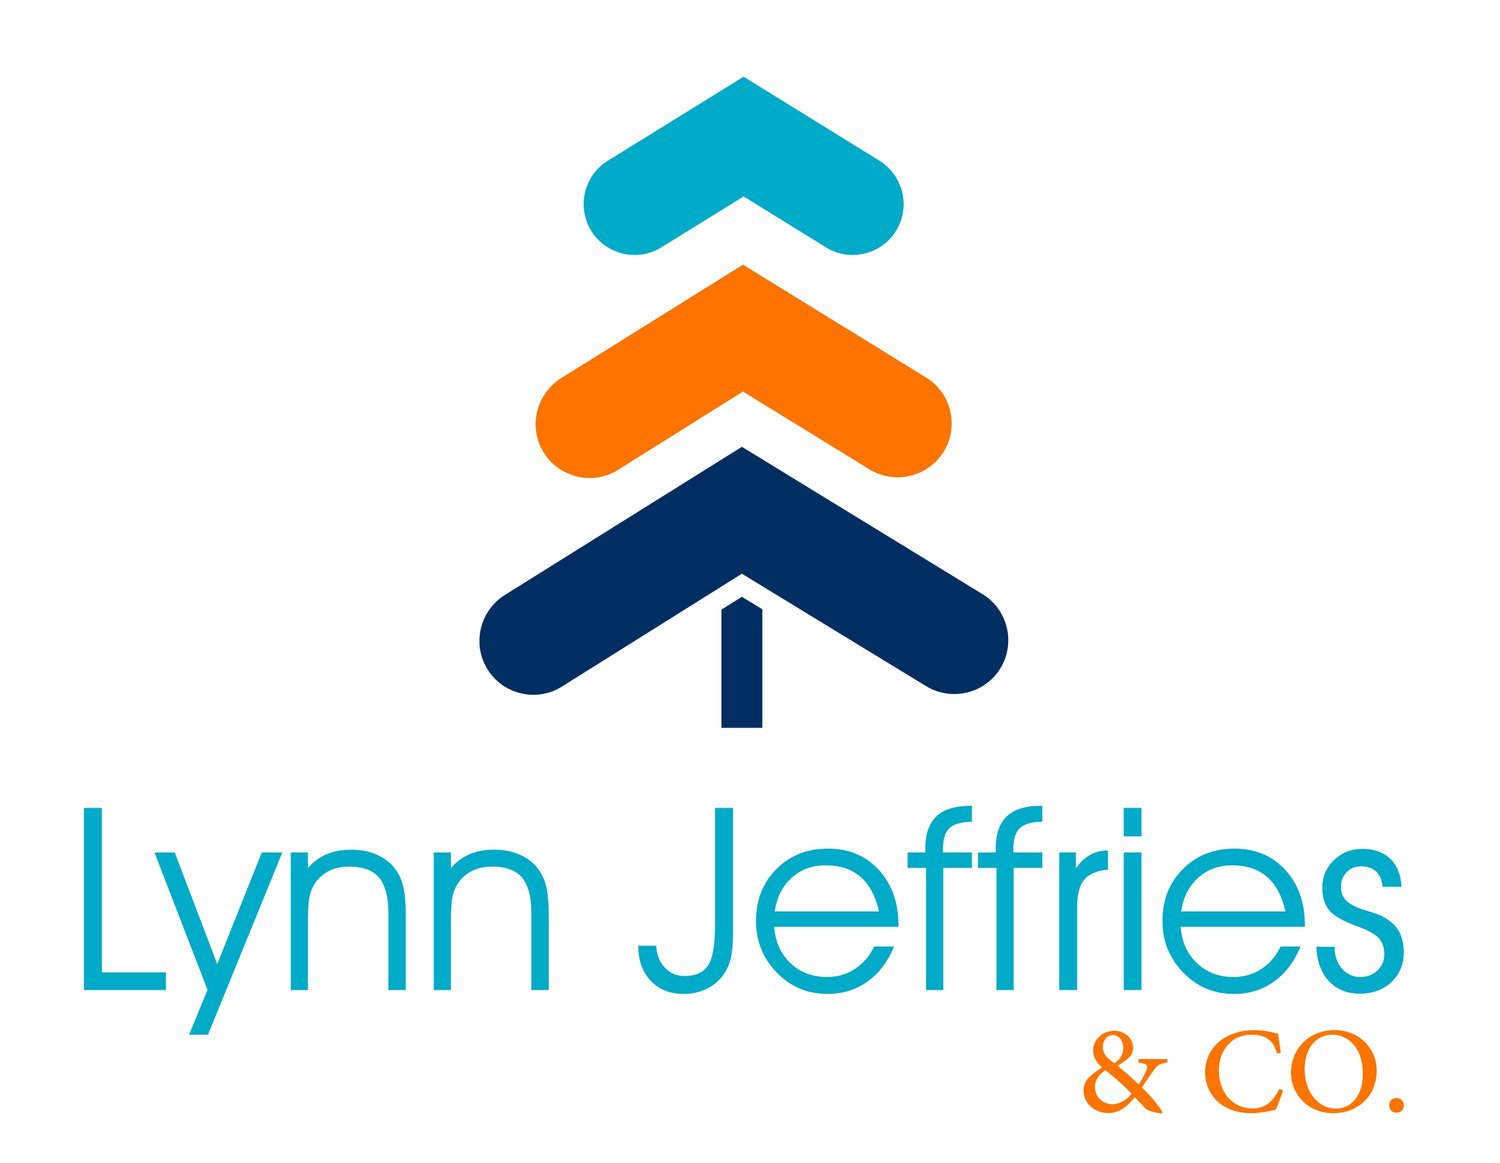 Lynn Jeffries & Co.